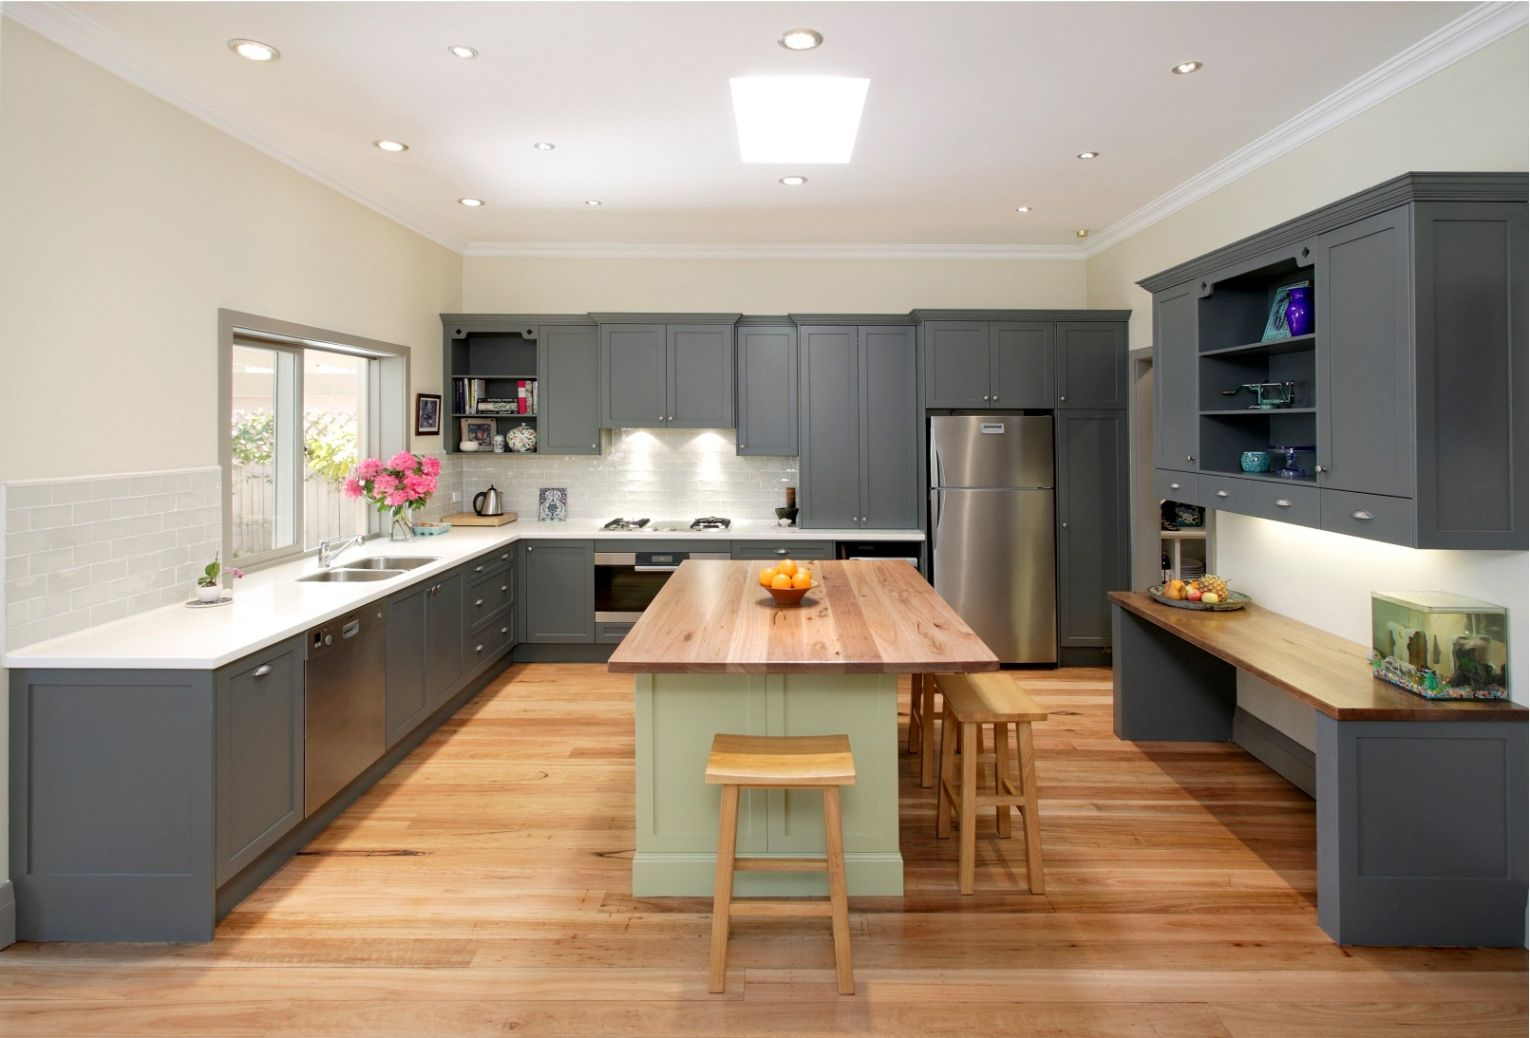 Superb Gray Kitchen Cabinet Designs - Light grey kitchen cabinets with butcher block countertops